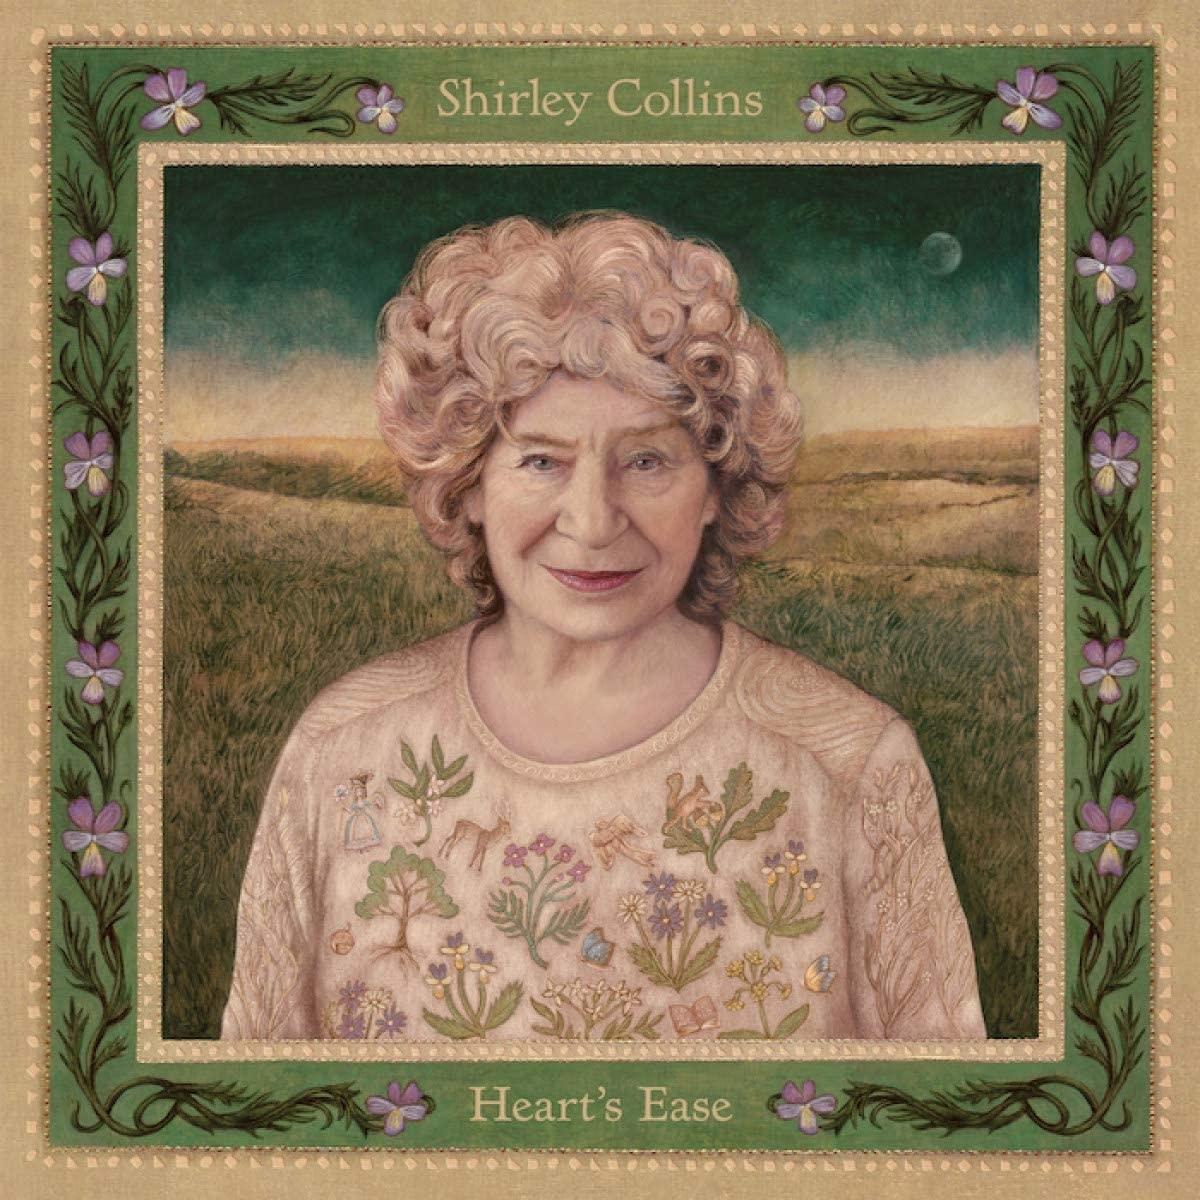 Domino Recording Co. Shirley Collins - Heart's Ease (Love Record Stores Version)